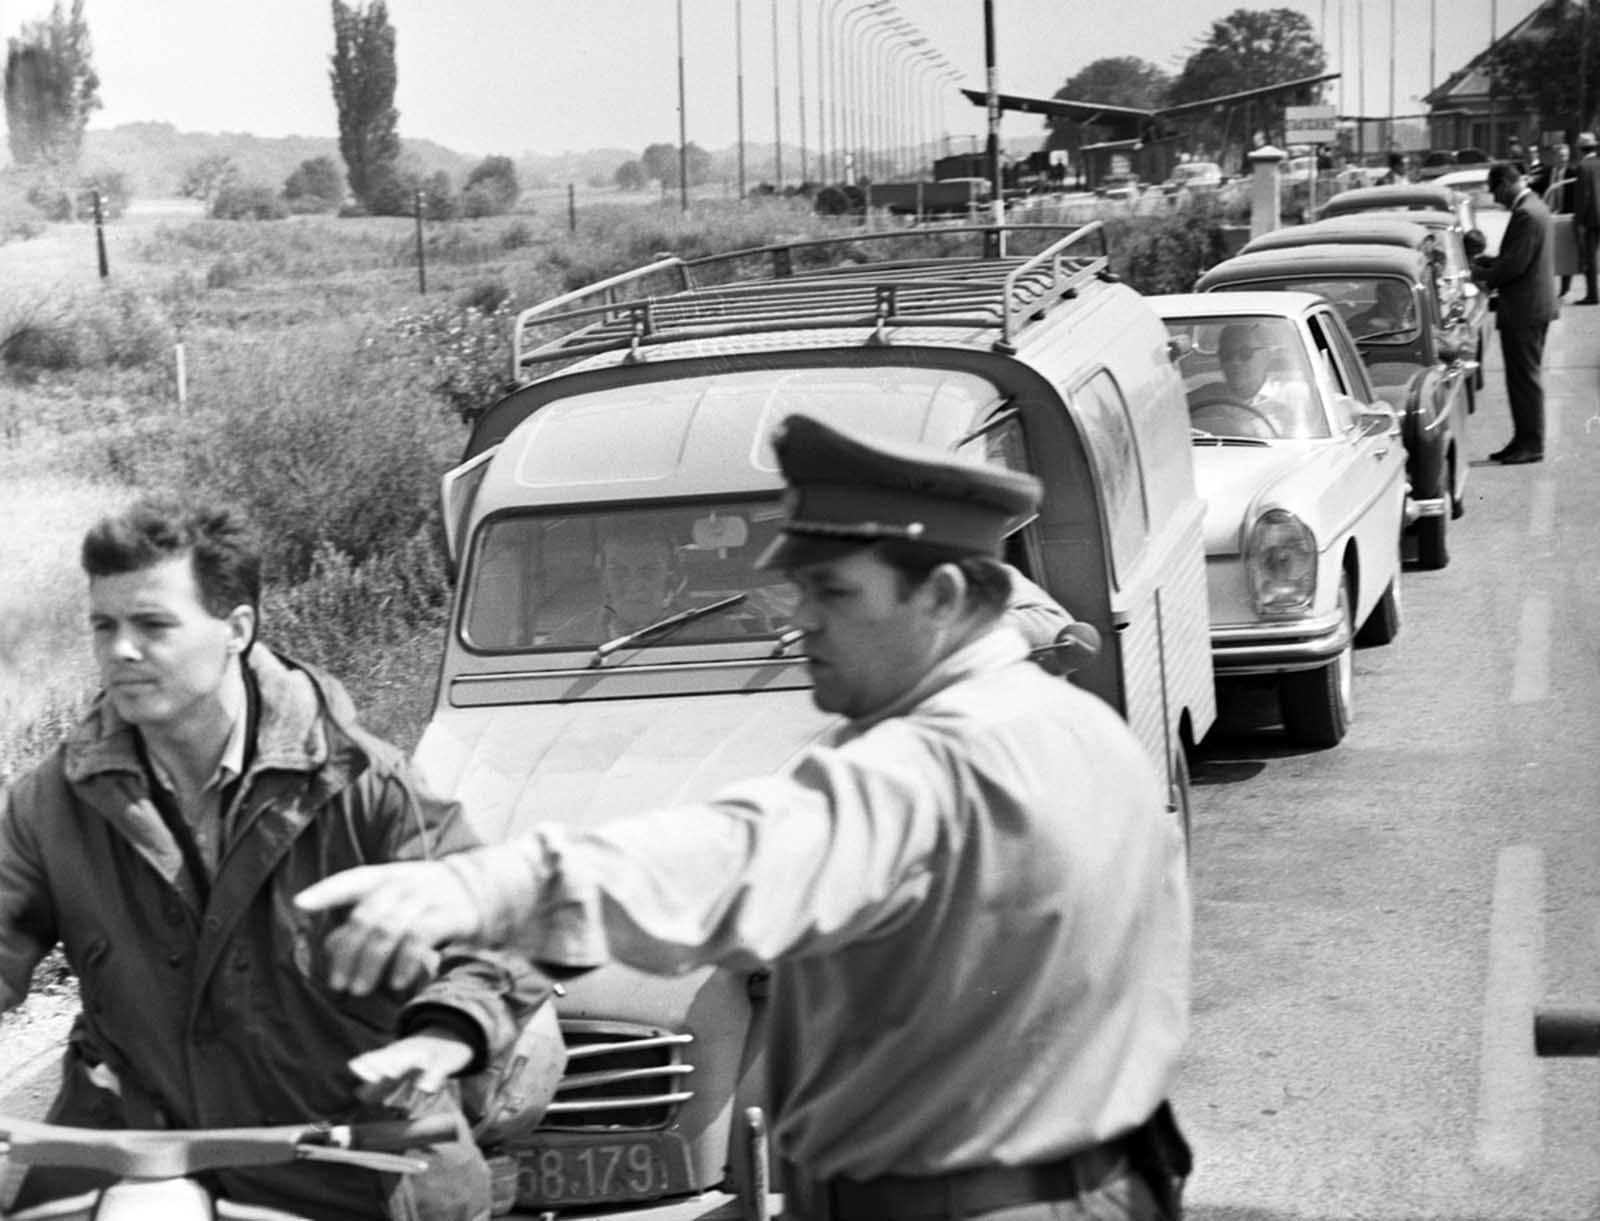 Czechoslovakian refugees flee the country, photographed here at the Austrian border, in autumn 1968.